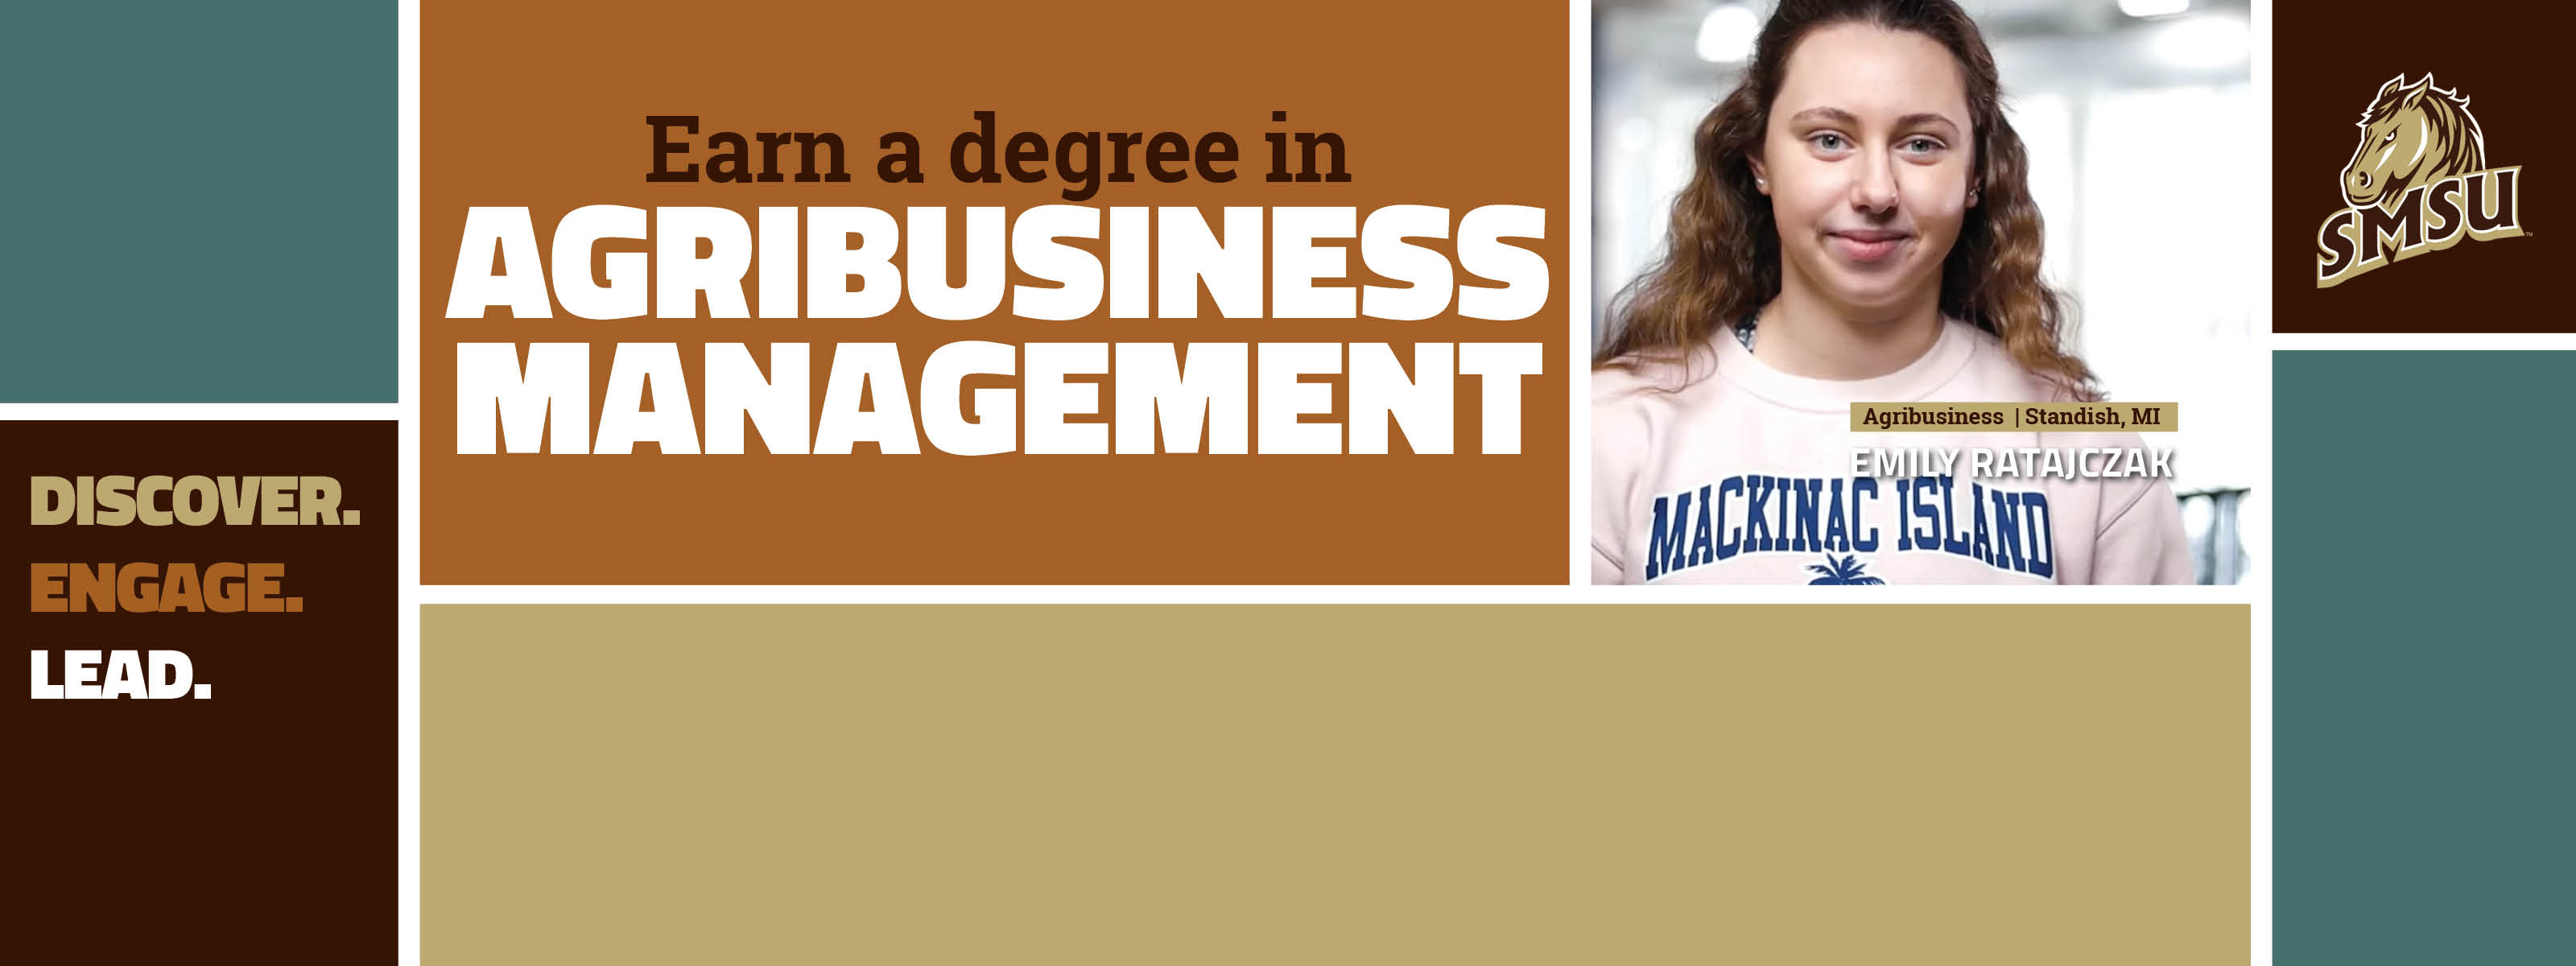 Earn A Degree In Agribusiness Management - Discover. Engage. Lead.